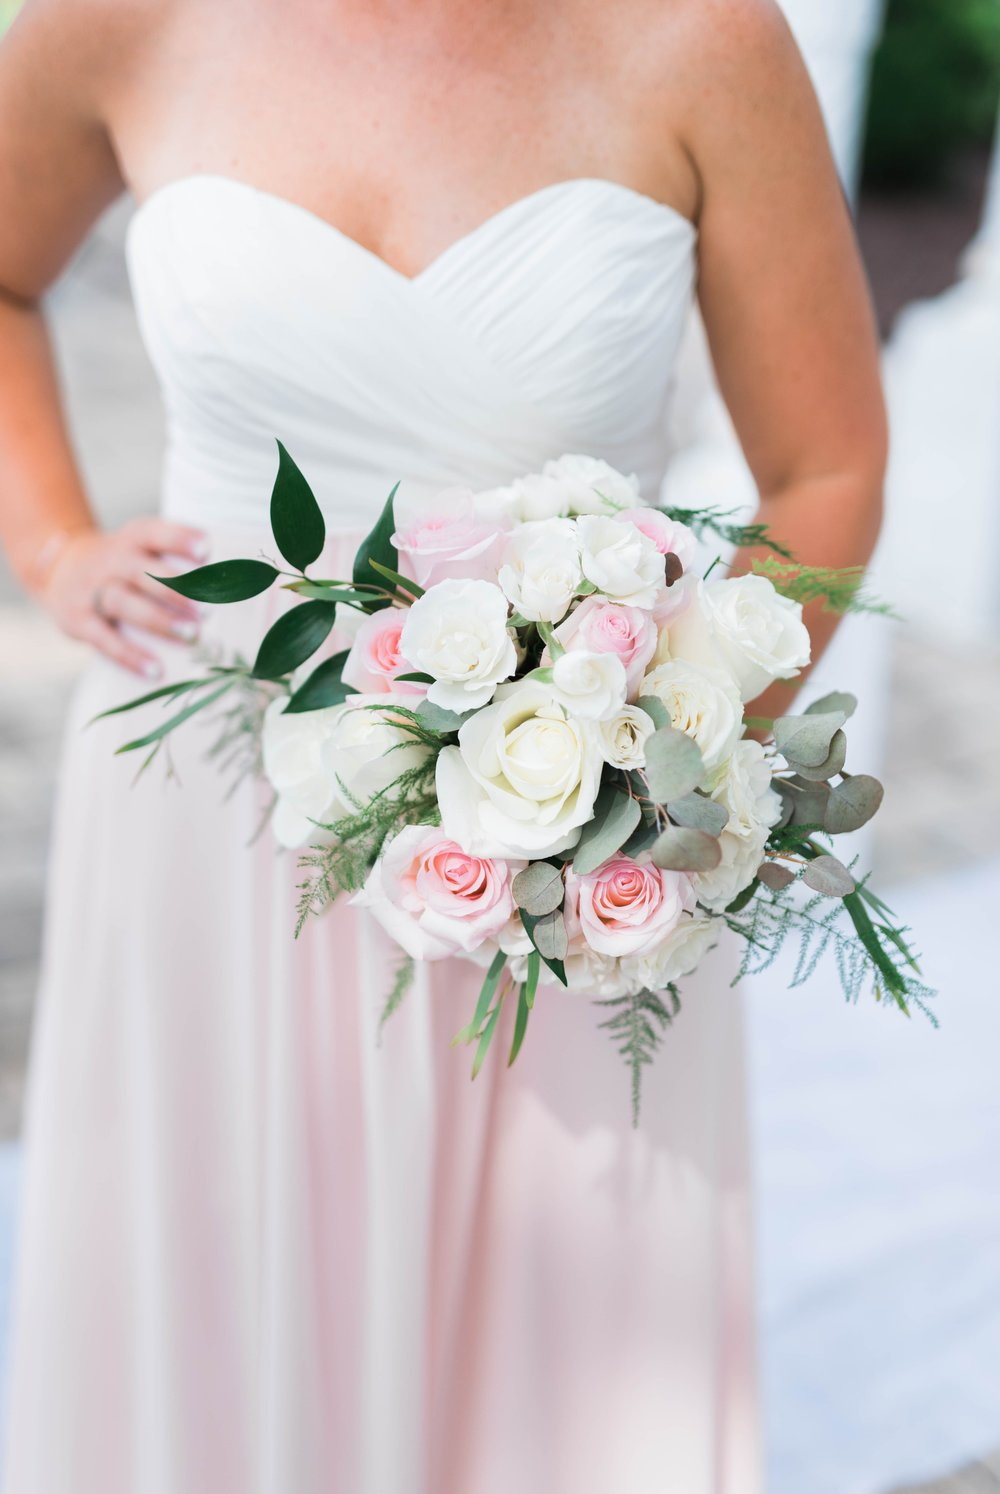 BedfordColumns_EntwinedEvents_Lynchburgwedding_VIrginiaweddingphotographer_ALlisonNIck 24.jpg